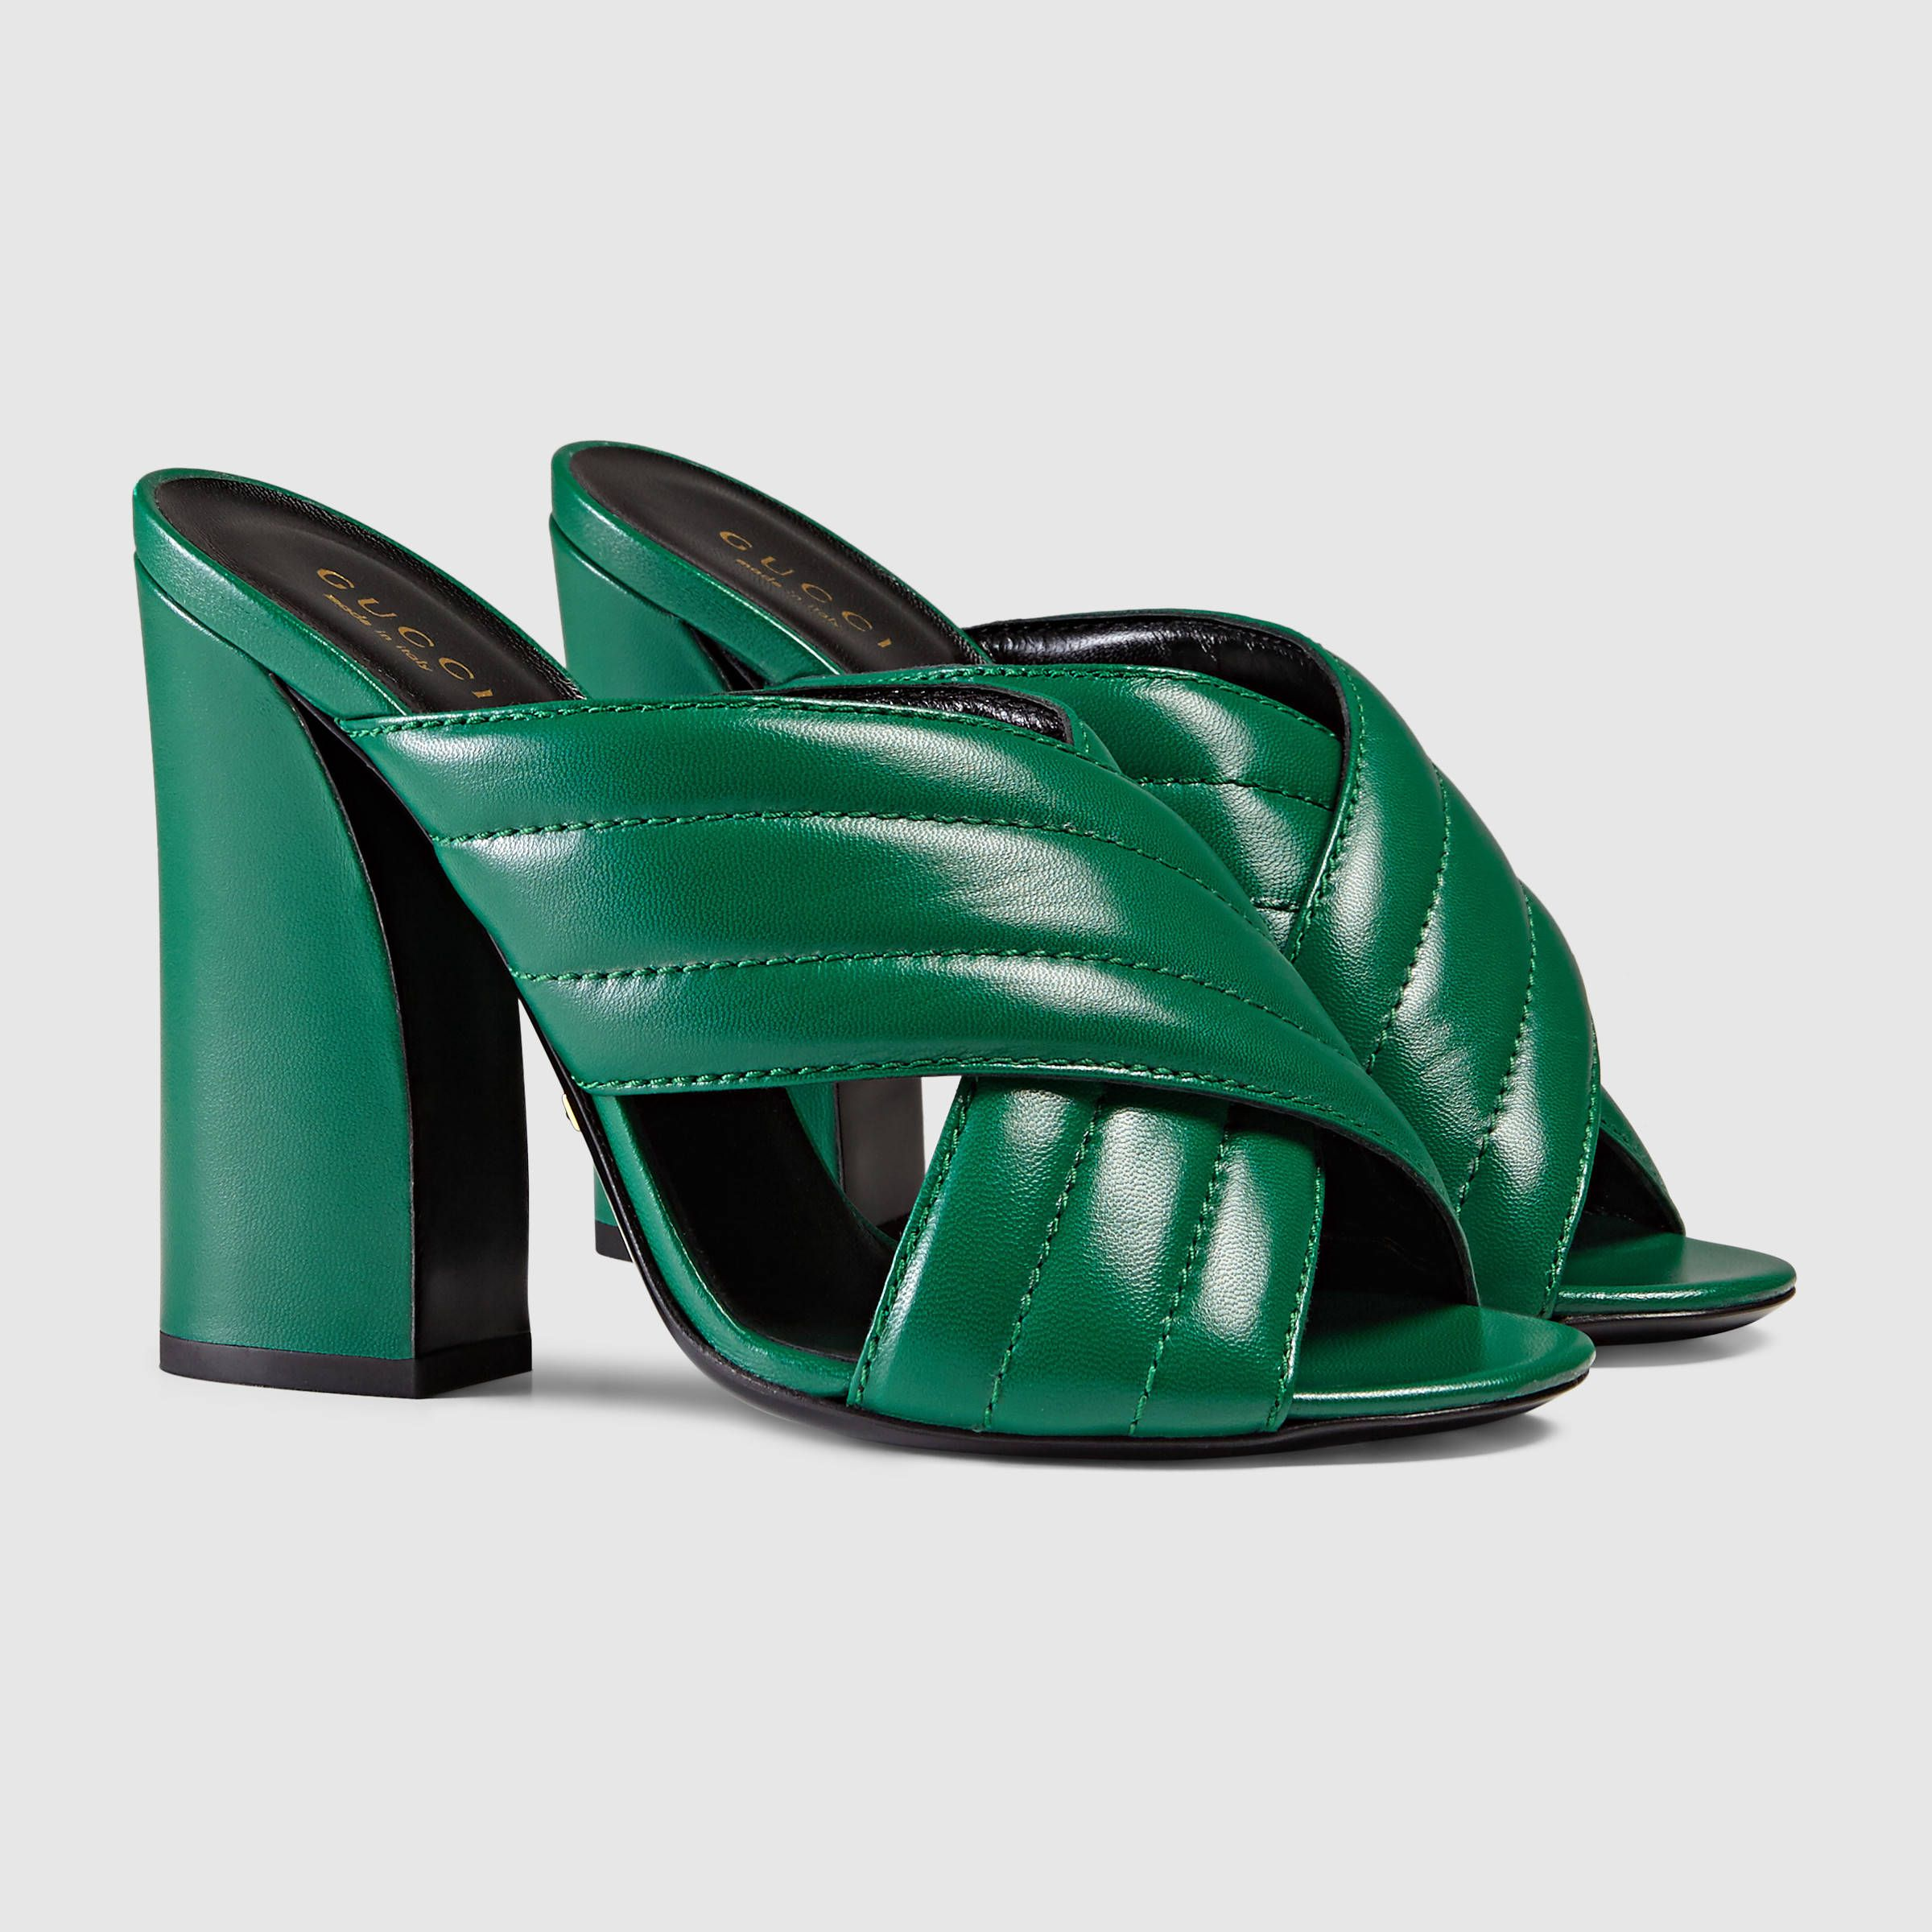 cf2a9655cb4a Gucci Women - Leather crossover sandal - 408306C9D003120